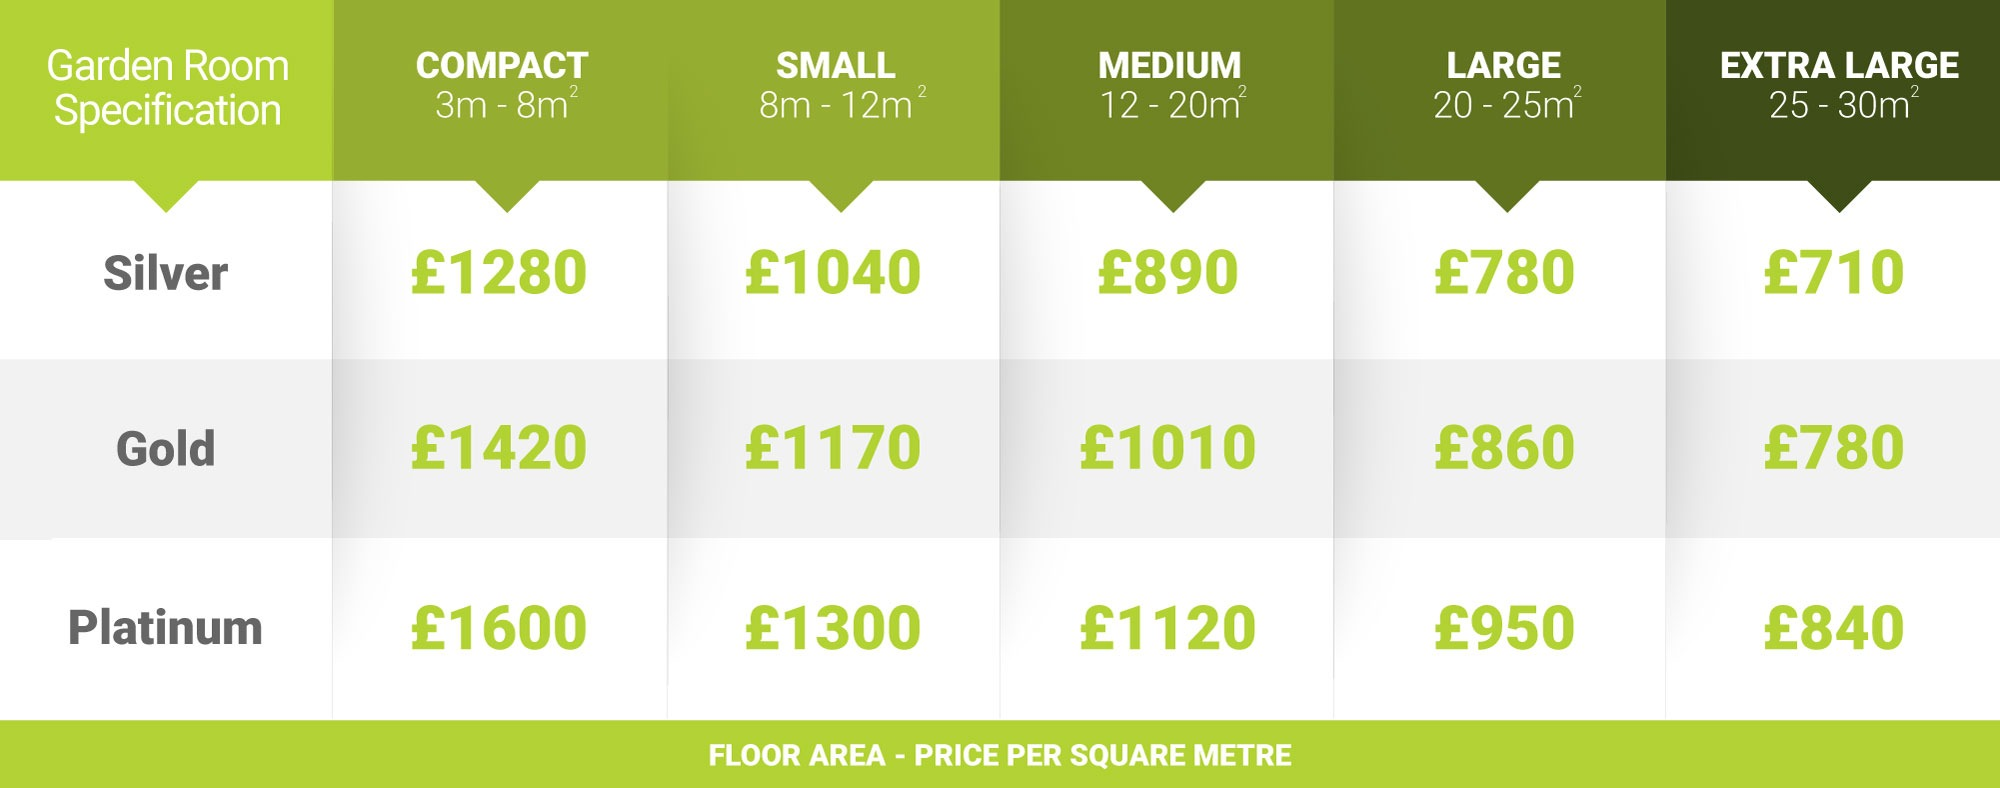 Garden Room Pricing Chart